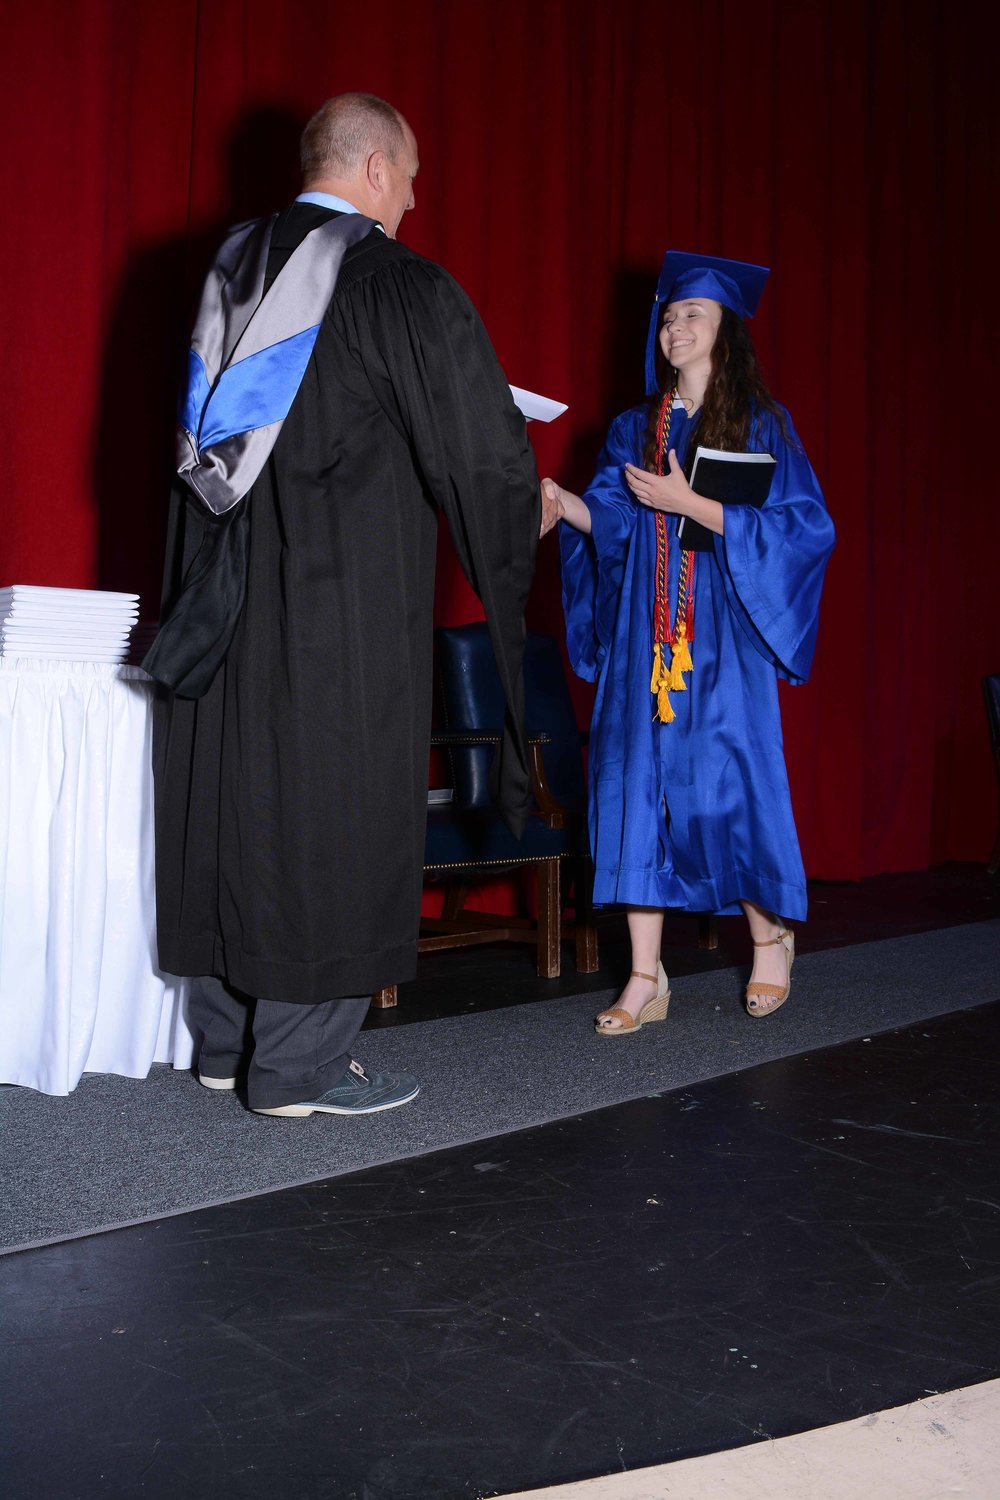 May14 Commencement94.jpg